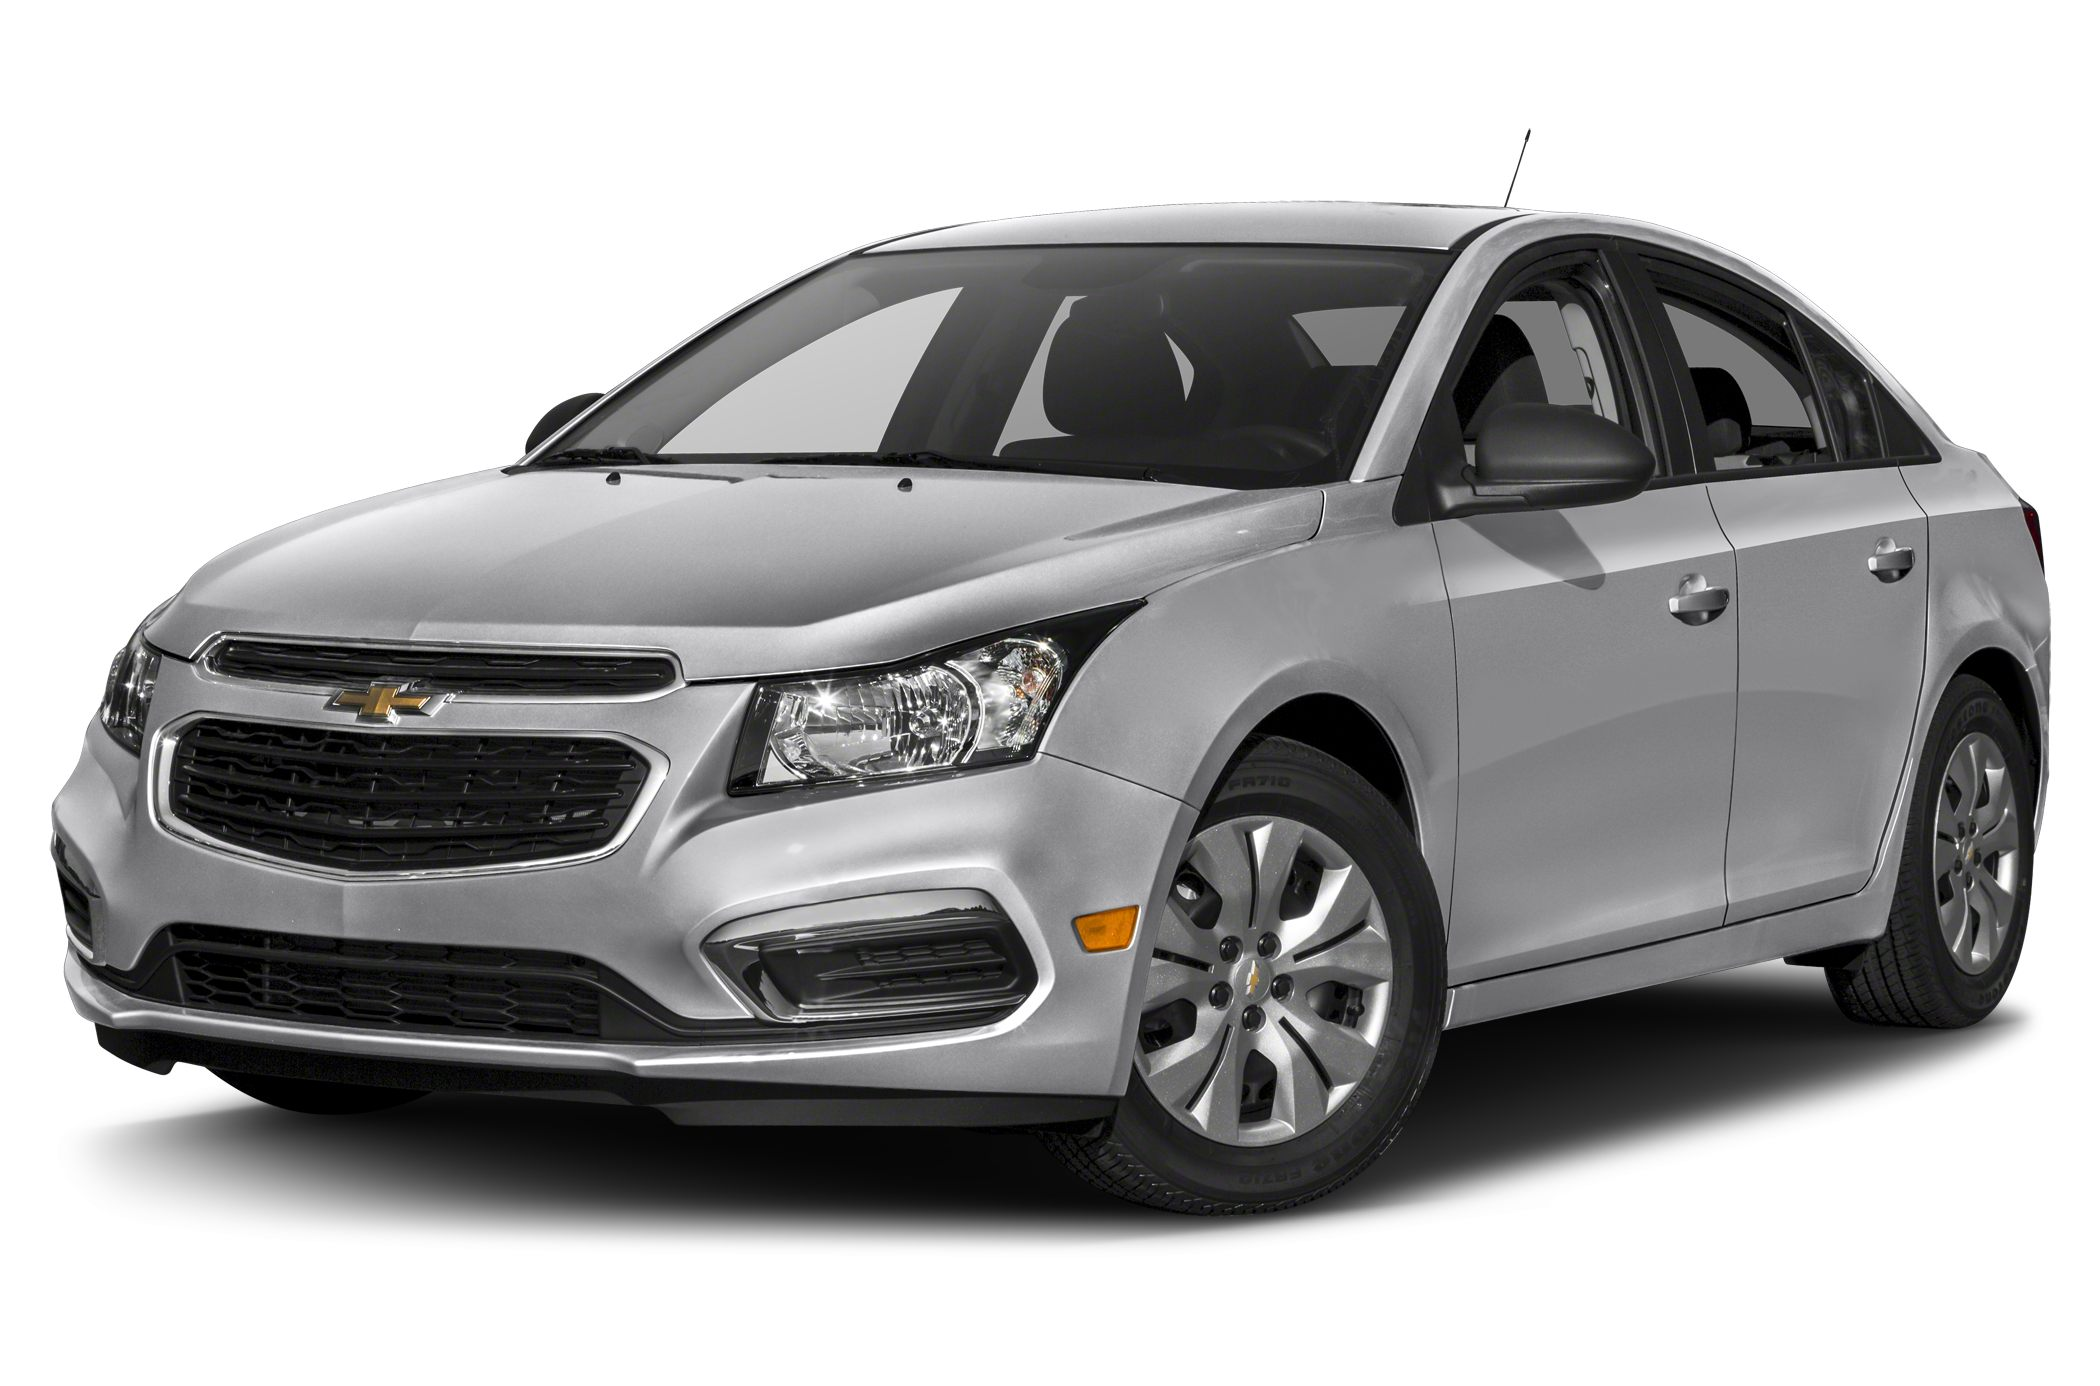 2016 Cruze Limited Owner Reviews 1